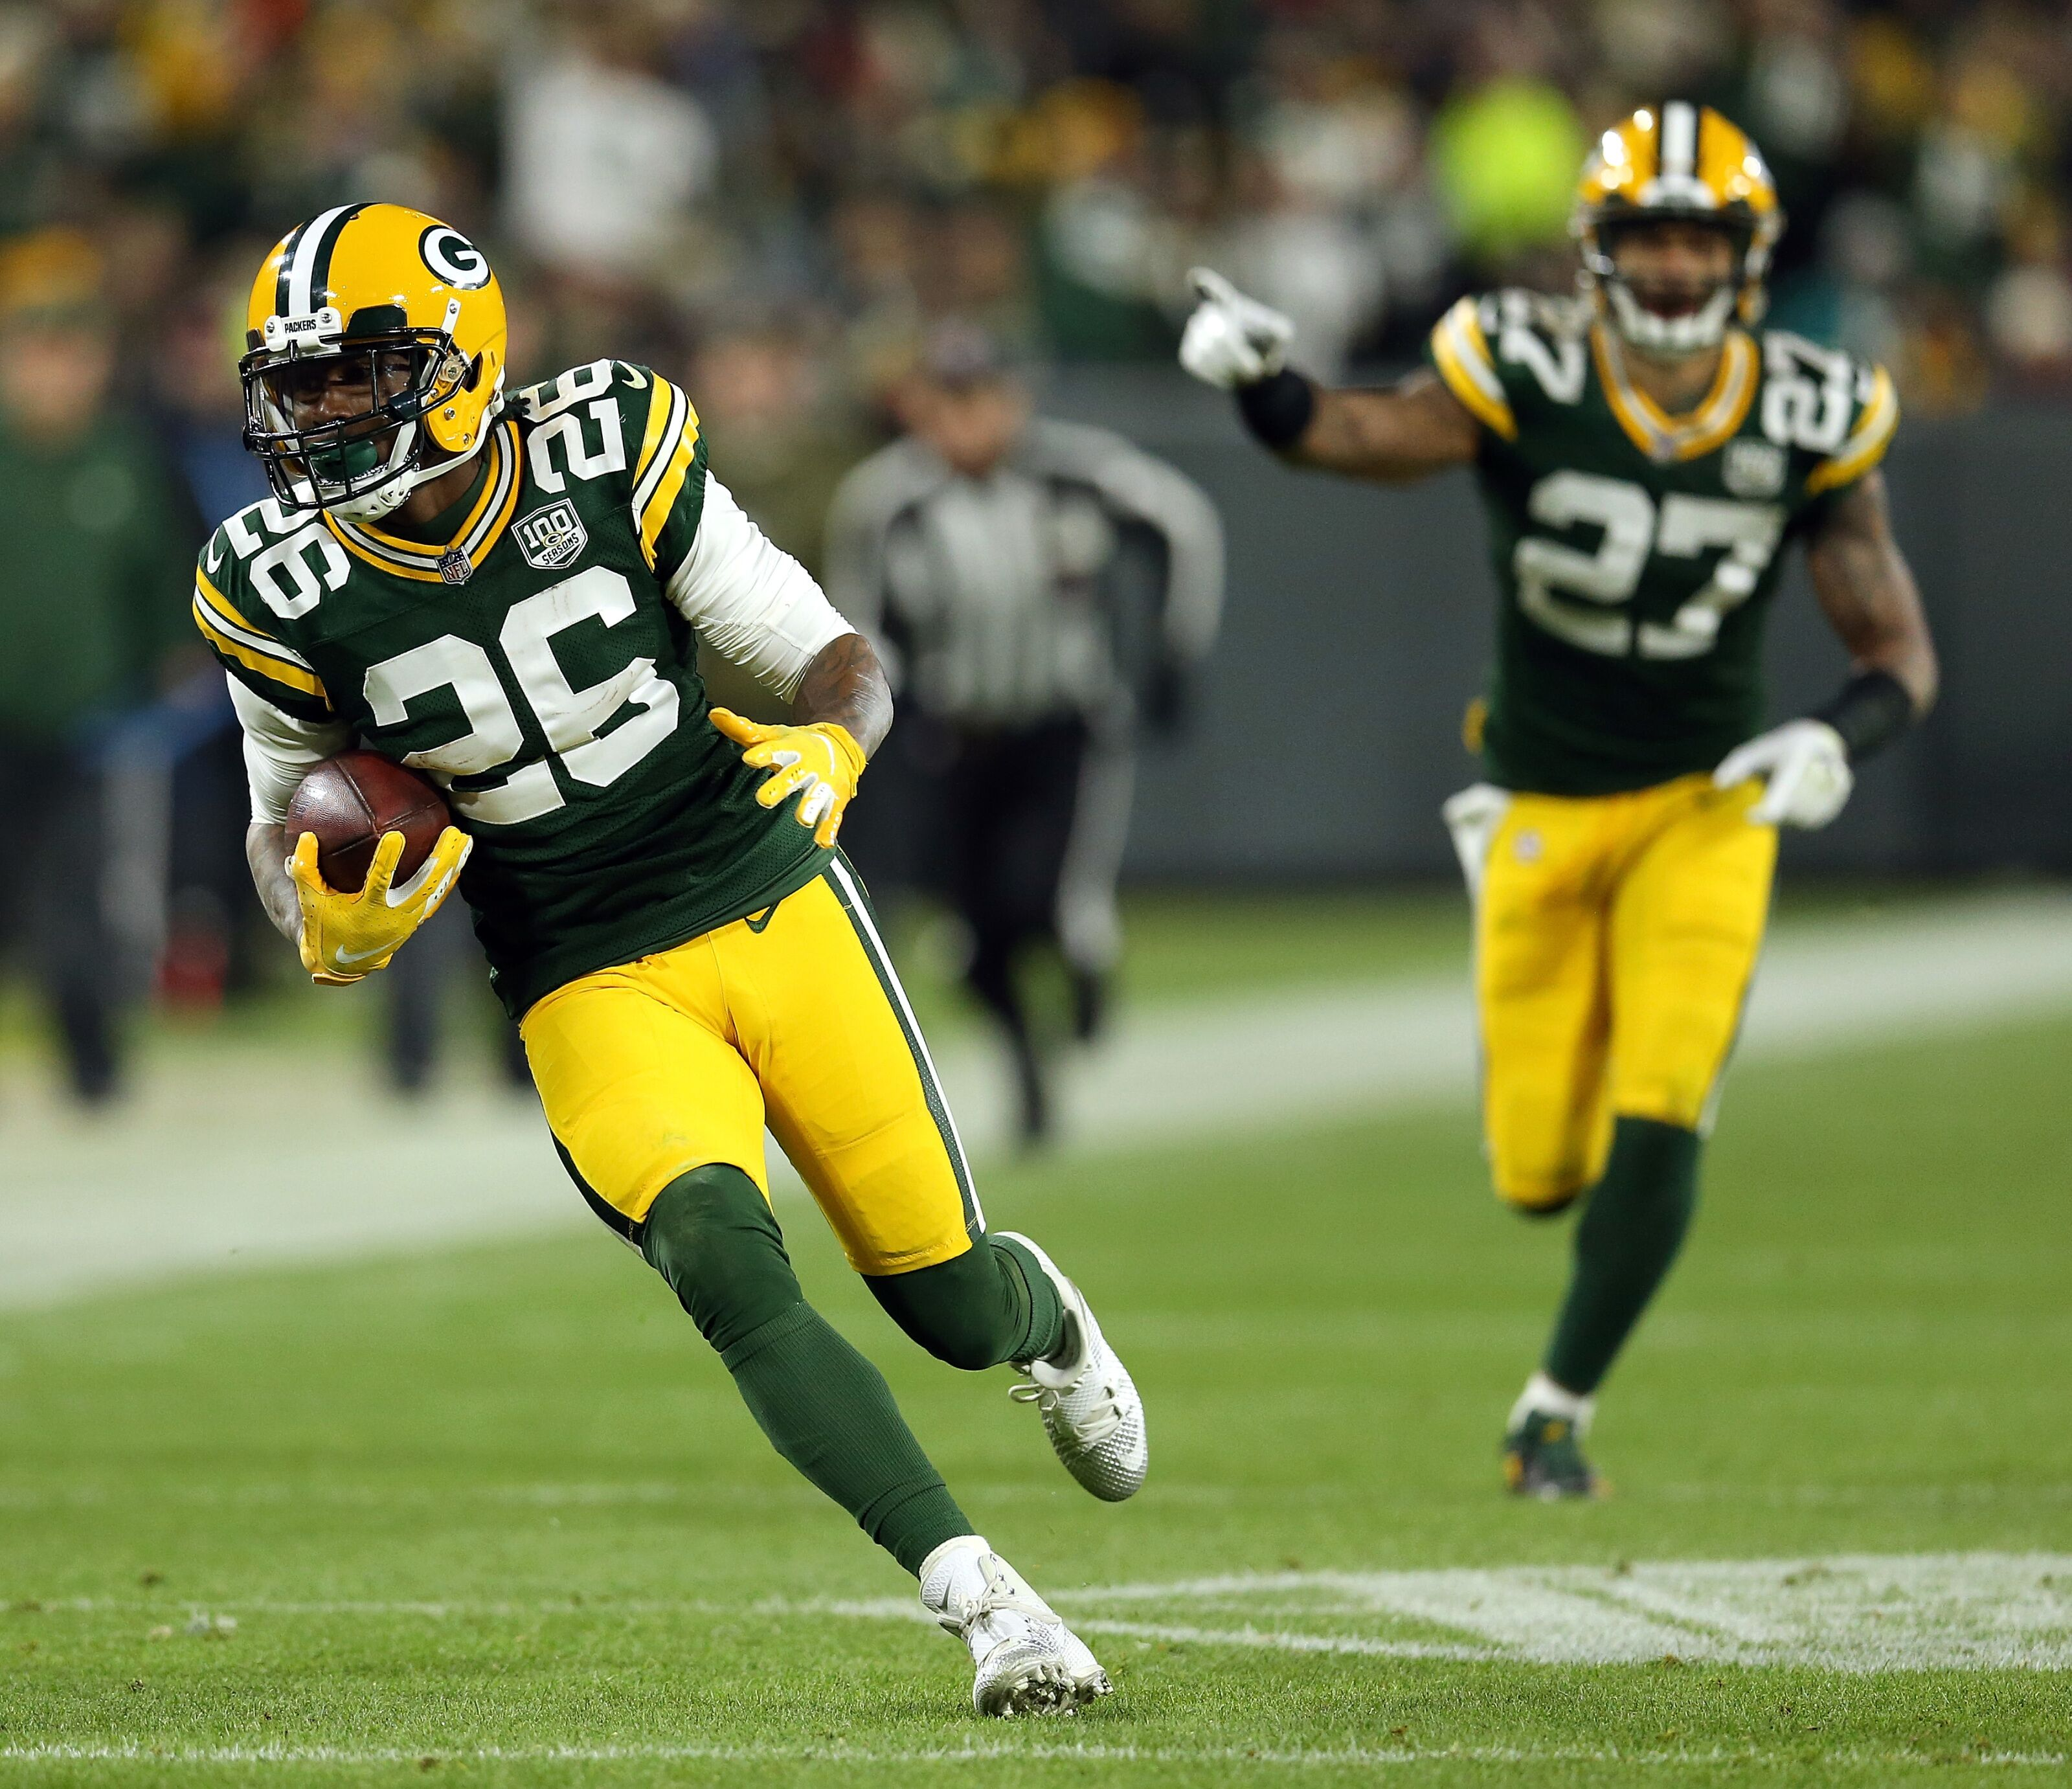 GREEN BAY, WI - NOVEMBER 11: Bashaud Breeland #26 of the Green Bay Packers runs with the ball after intercepting a pass during the second half of a game against the Miami Dolphins at Lambeau Field on November 11, 2018 in Green Bay, Wisconsin. (Photo by Dylan Buell/Getty Images)